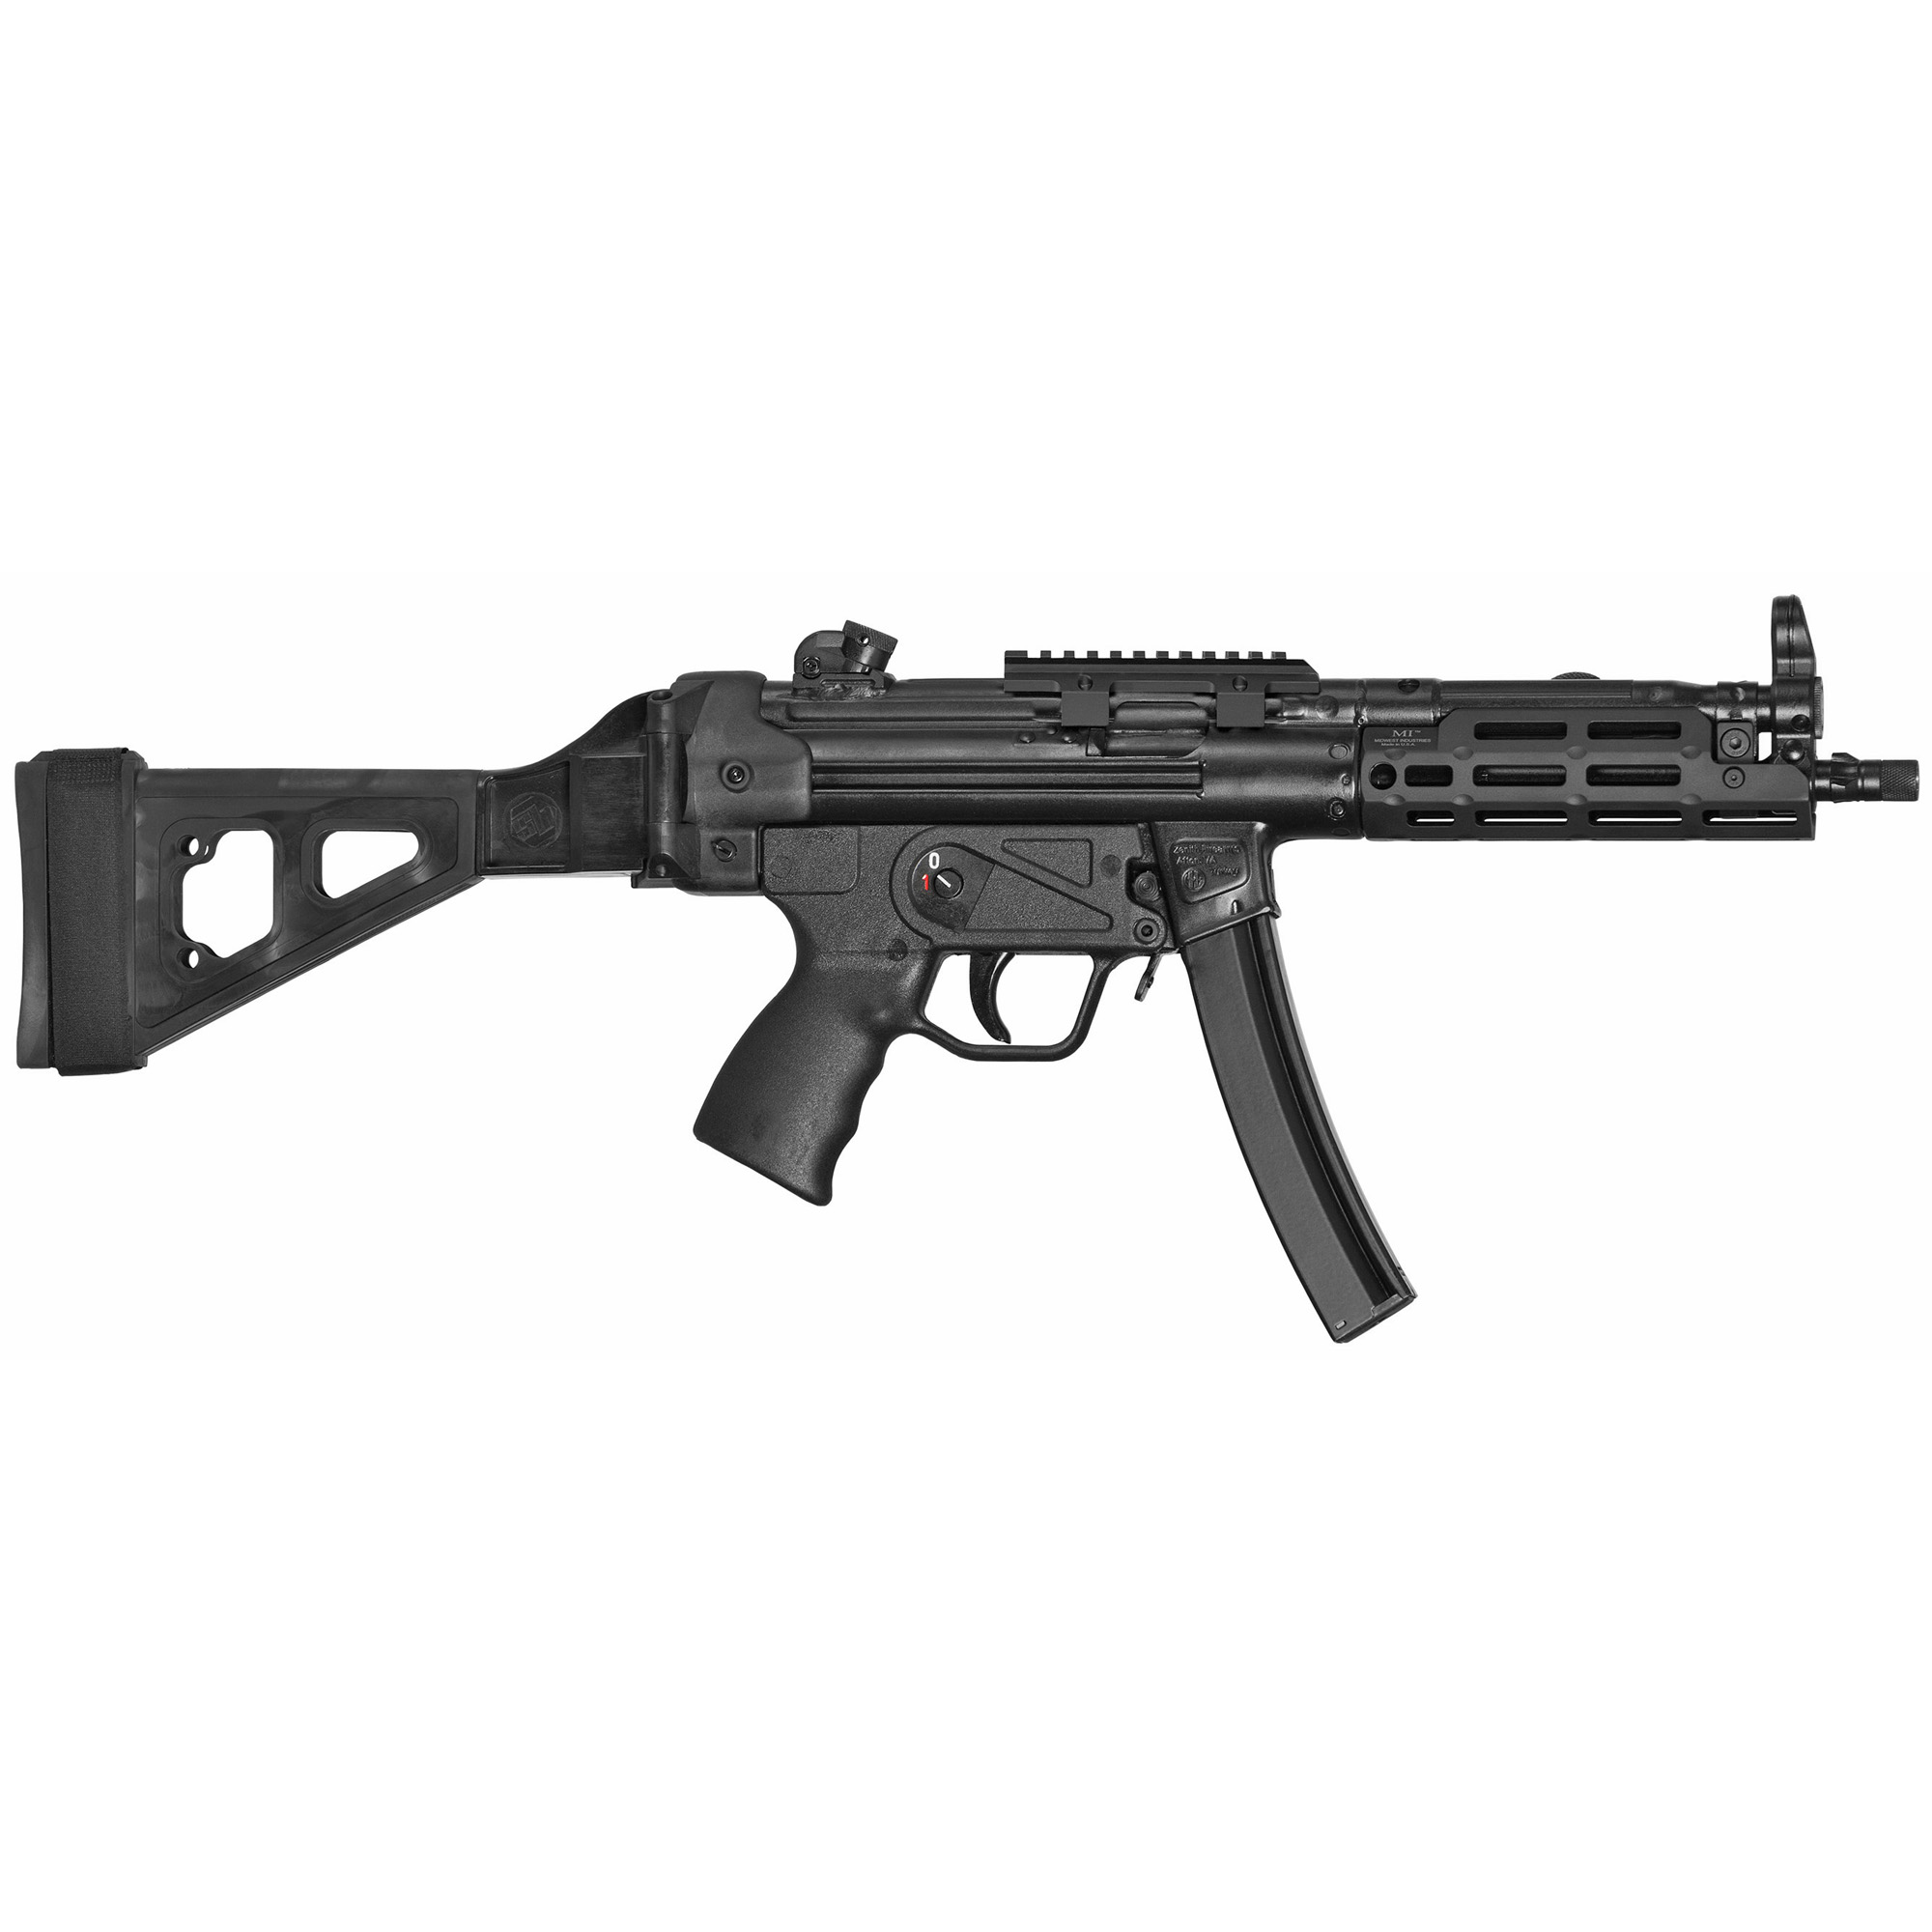 """The Z-5RS SB Rail is Zenith's Z-5RS outfitted with an M-LOK forearm and a folding pistol brace. It is covered by a five-year warranty"""" and ships in an MKE hard case with a receiver end cap"""" a Picatinny optic rail"""" three magazines"""" a military-style sling"""" two extra takedown pins"""" a cleaning kit"""" and a user manual."""